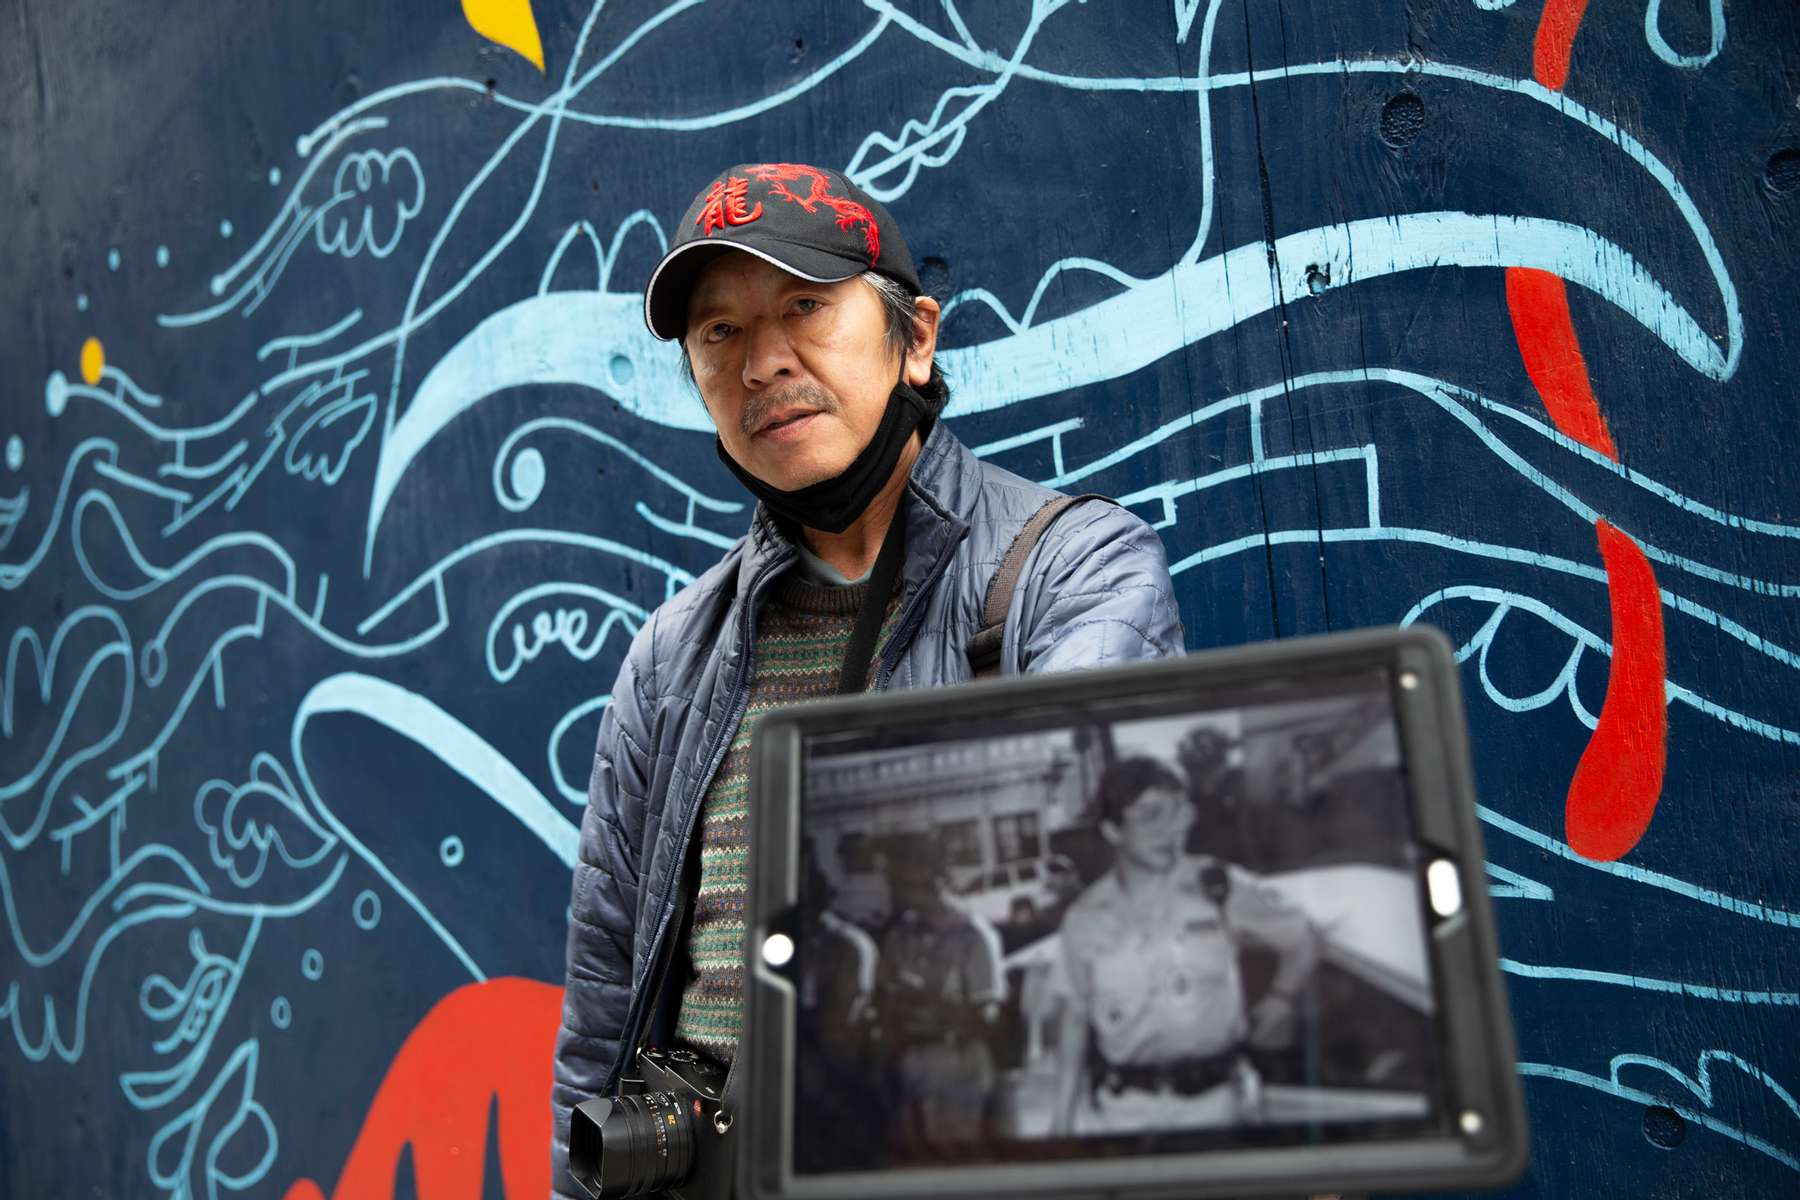 """Photographer and co-founder of the International District Emergency Center (IDEC), Dean Wong, holdsa picture of Donnie Chin many years ago in the Chinatown - International District in Seattle, Washington on July 16 and 17, 2020. """"He was Dragon one. I was Dragon two,"""" says Wong explaining that all the volunteers had a code name on the radio. Donnie Chin, director of the International District Emergency Center (IDEC) was murdered on July 23, 2015. The murderer was never found. The mural behind him was painted by Moses Sun and the Wing Luke Museum staff on the boards protecting the windows after the riots from the Black Lives Matter movement. (Photo by Karen Ducey)"""